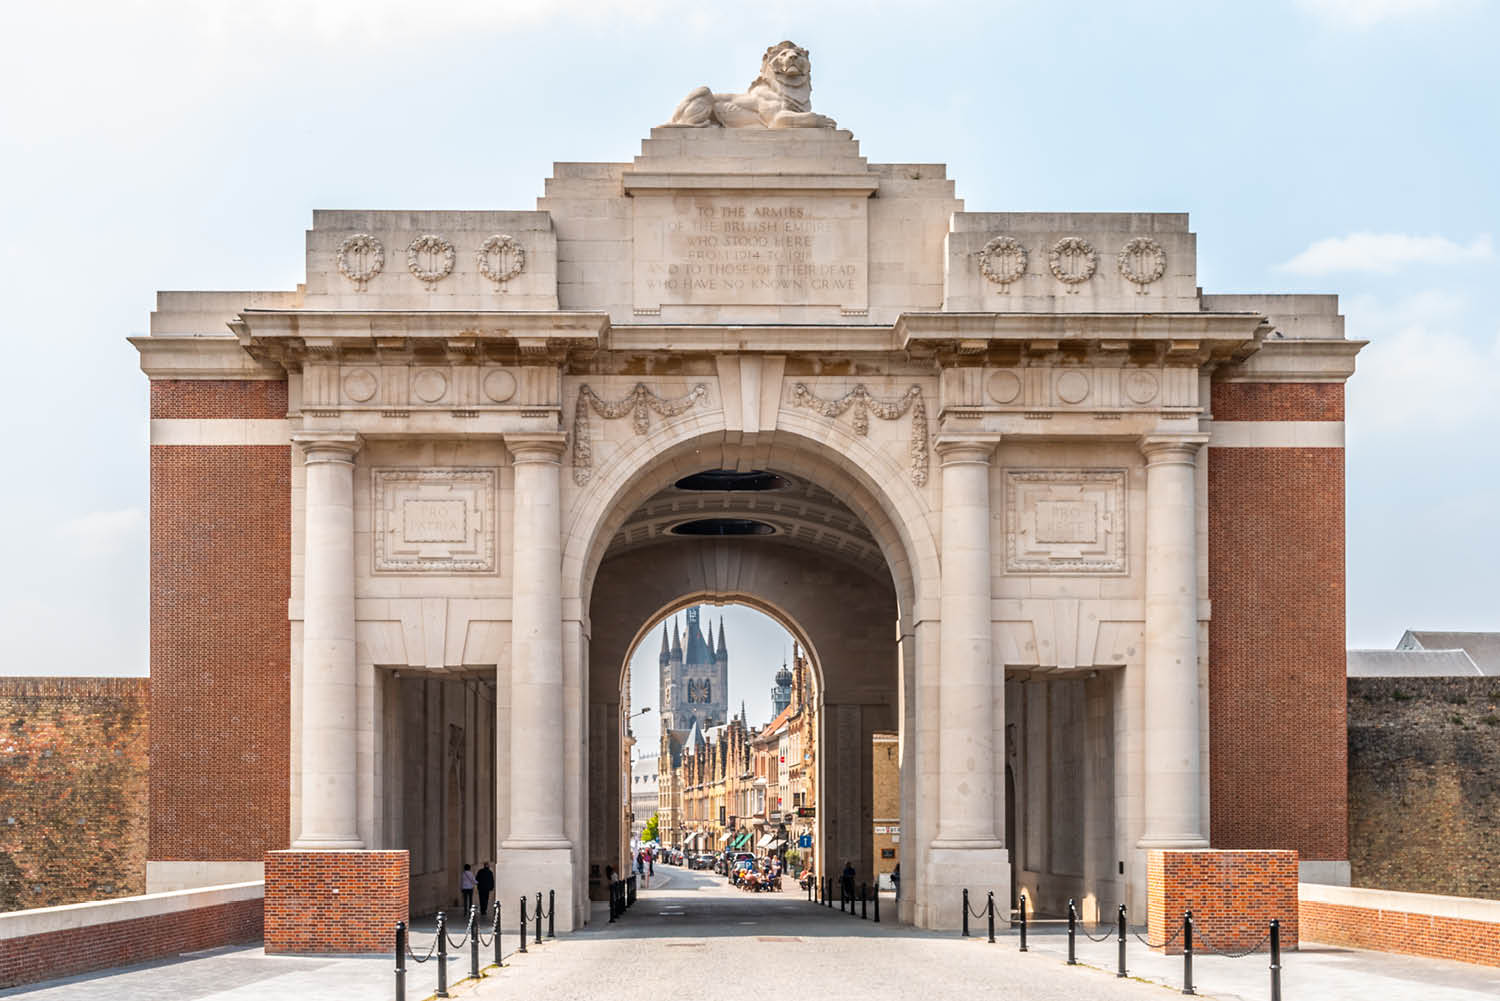 Front view of Menin gate at Ypres Belgium